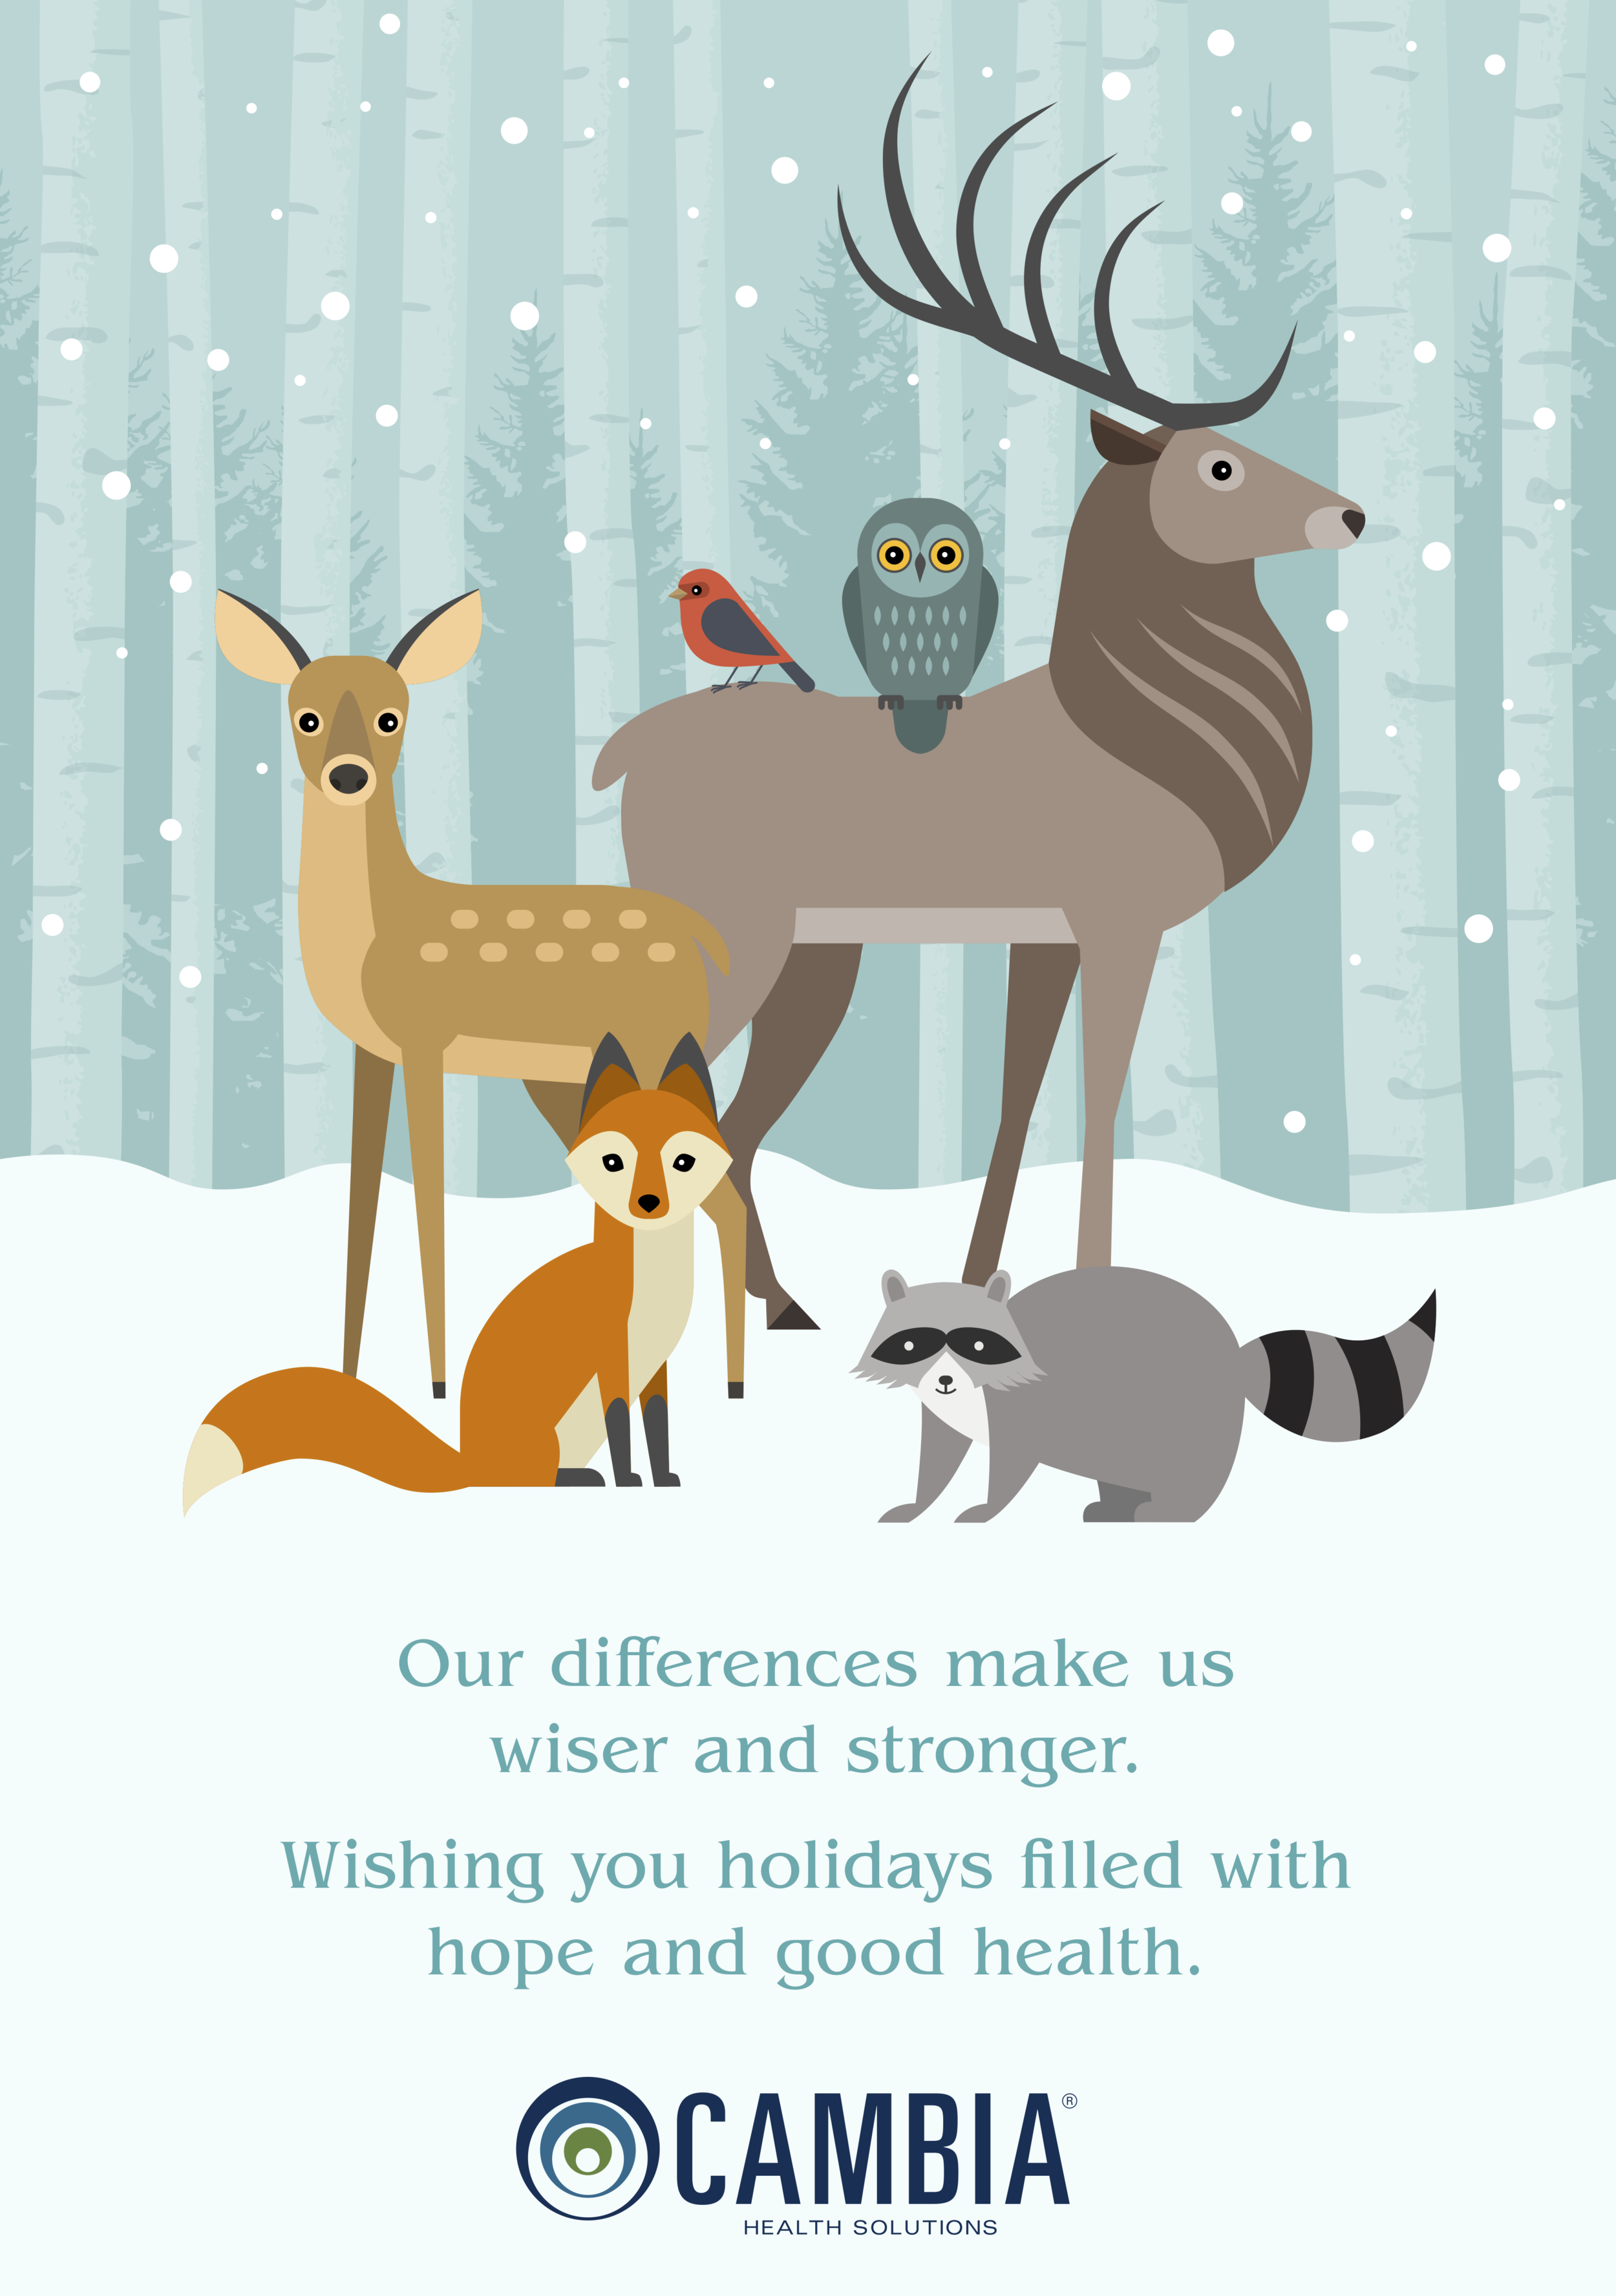 Corporate winter holiday e-card for Cambia employees, customers and investors playing into the themes of diversity and the importance of coming together. These are two themes that are highly important as Cambia pushes forward with their vision of healthcare for the future. Written for both internal and external audiences. To learn more about Cambia Health Solutions,  click here .